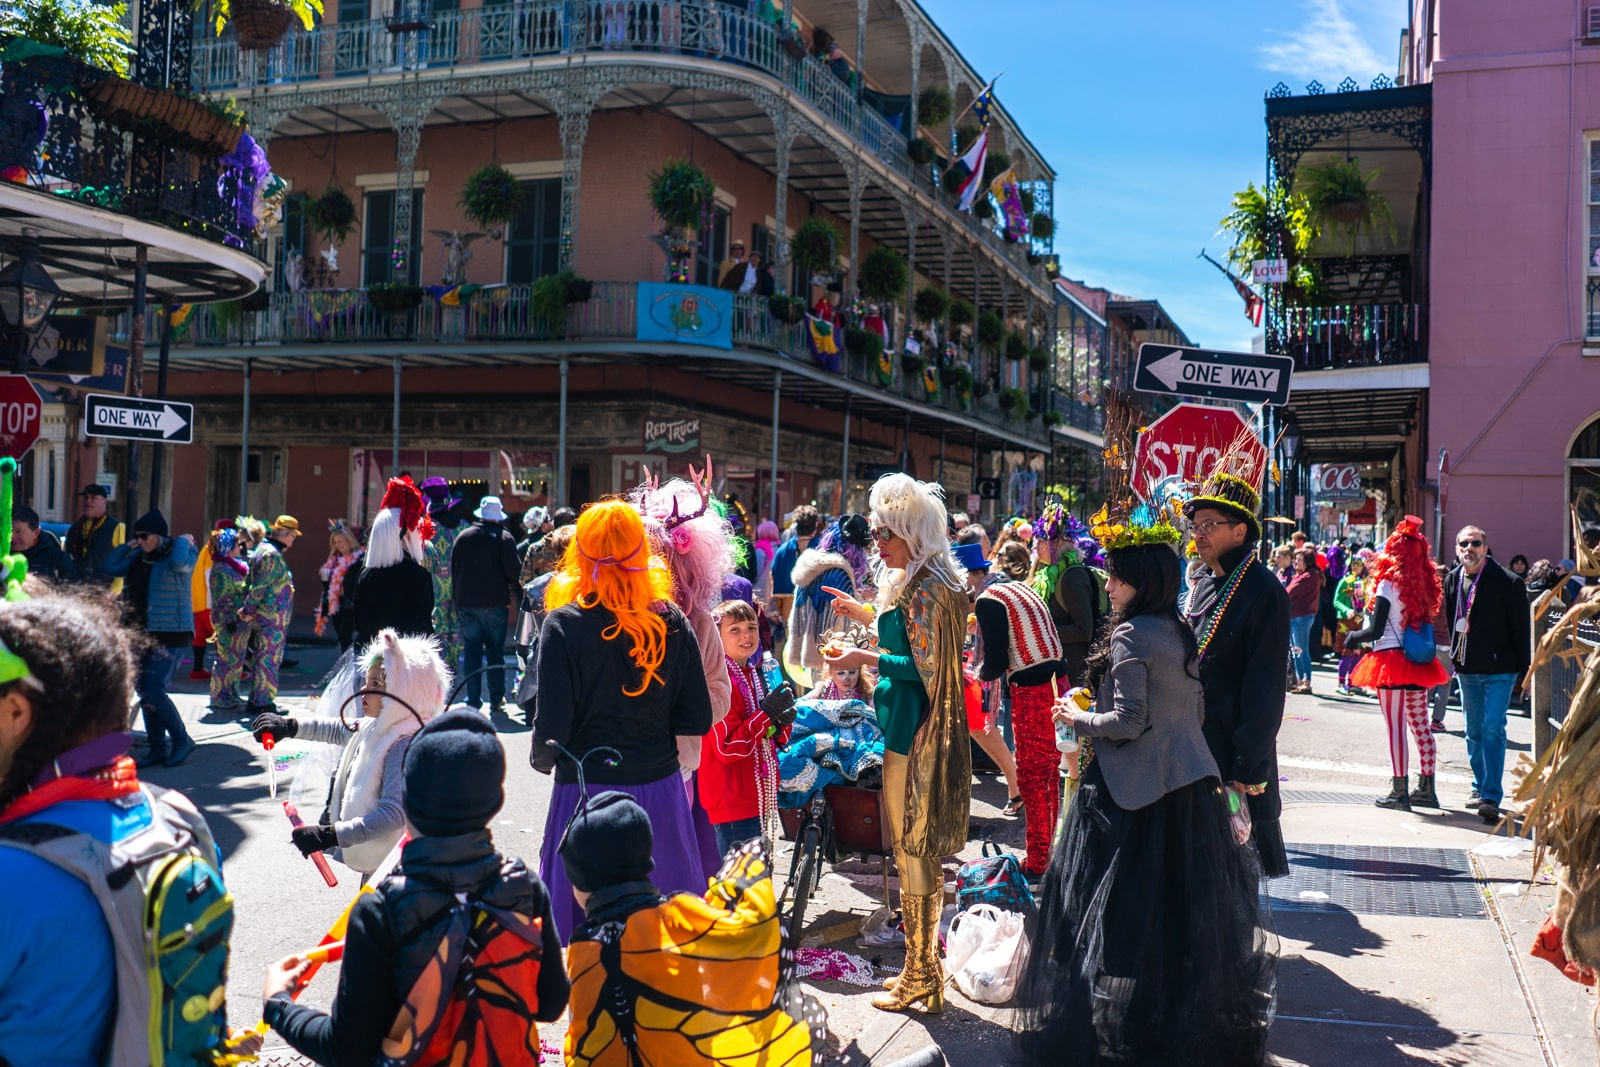 People partying in costume in the French Quarter during Mardi Gras in New Orleans